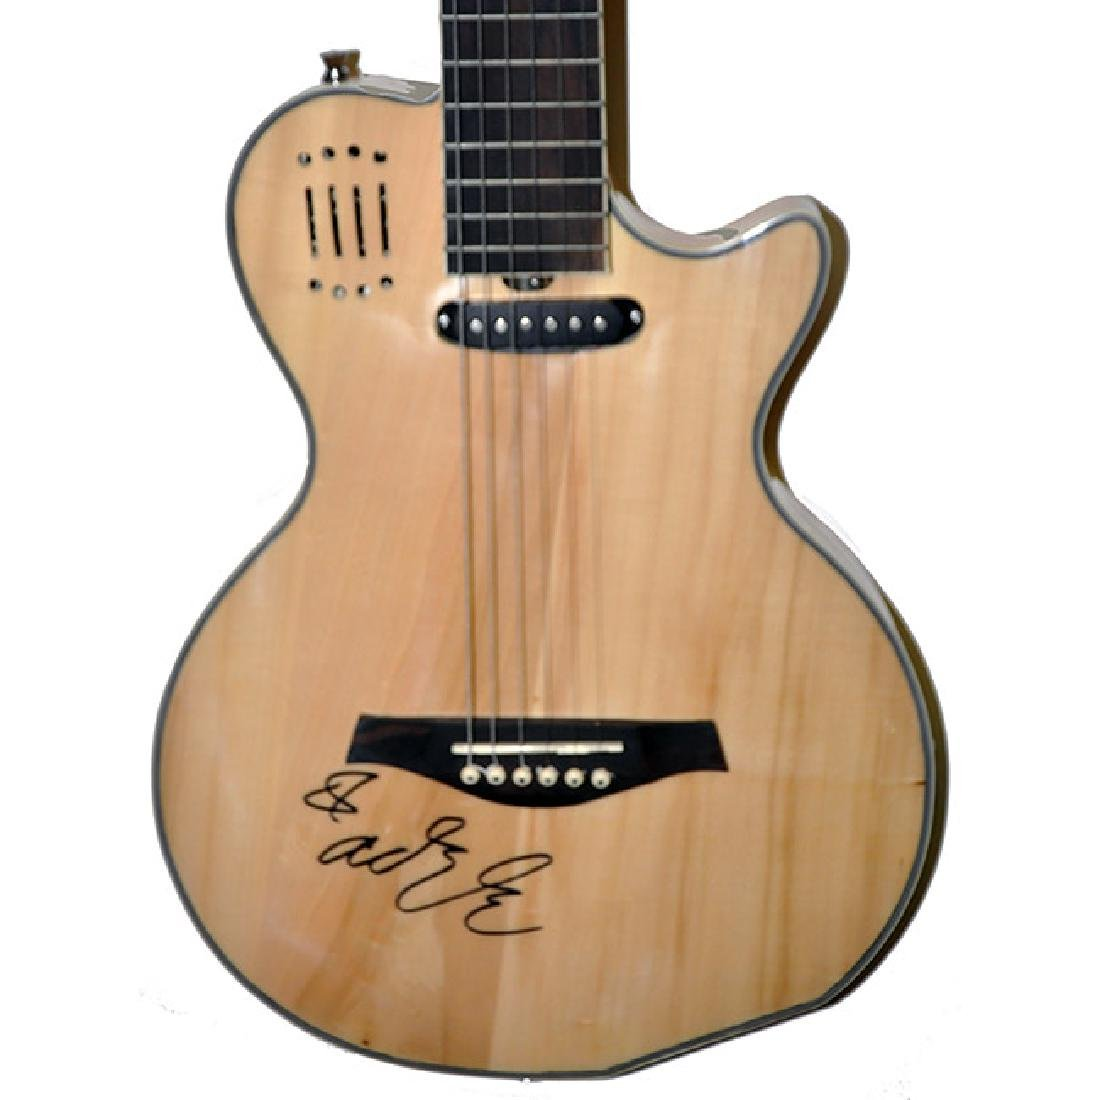 Adele Signed Electric Guitar